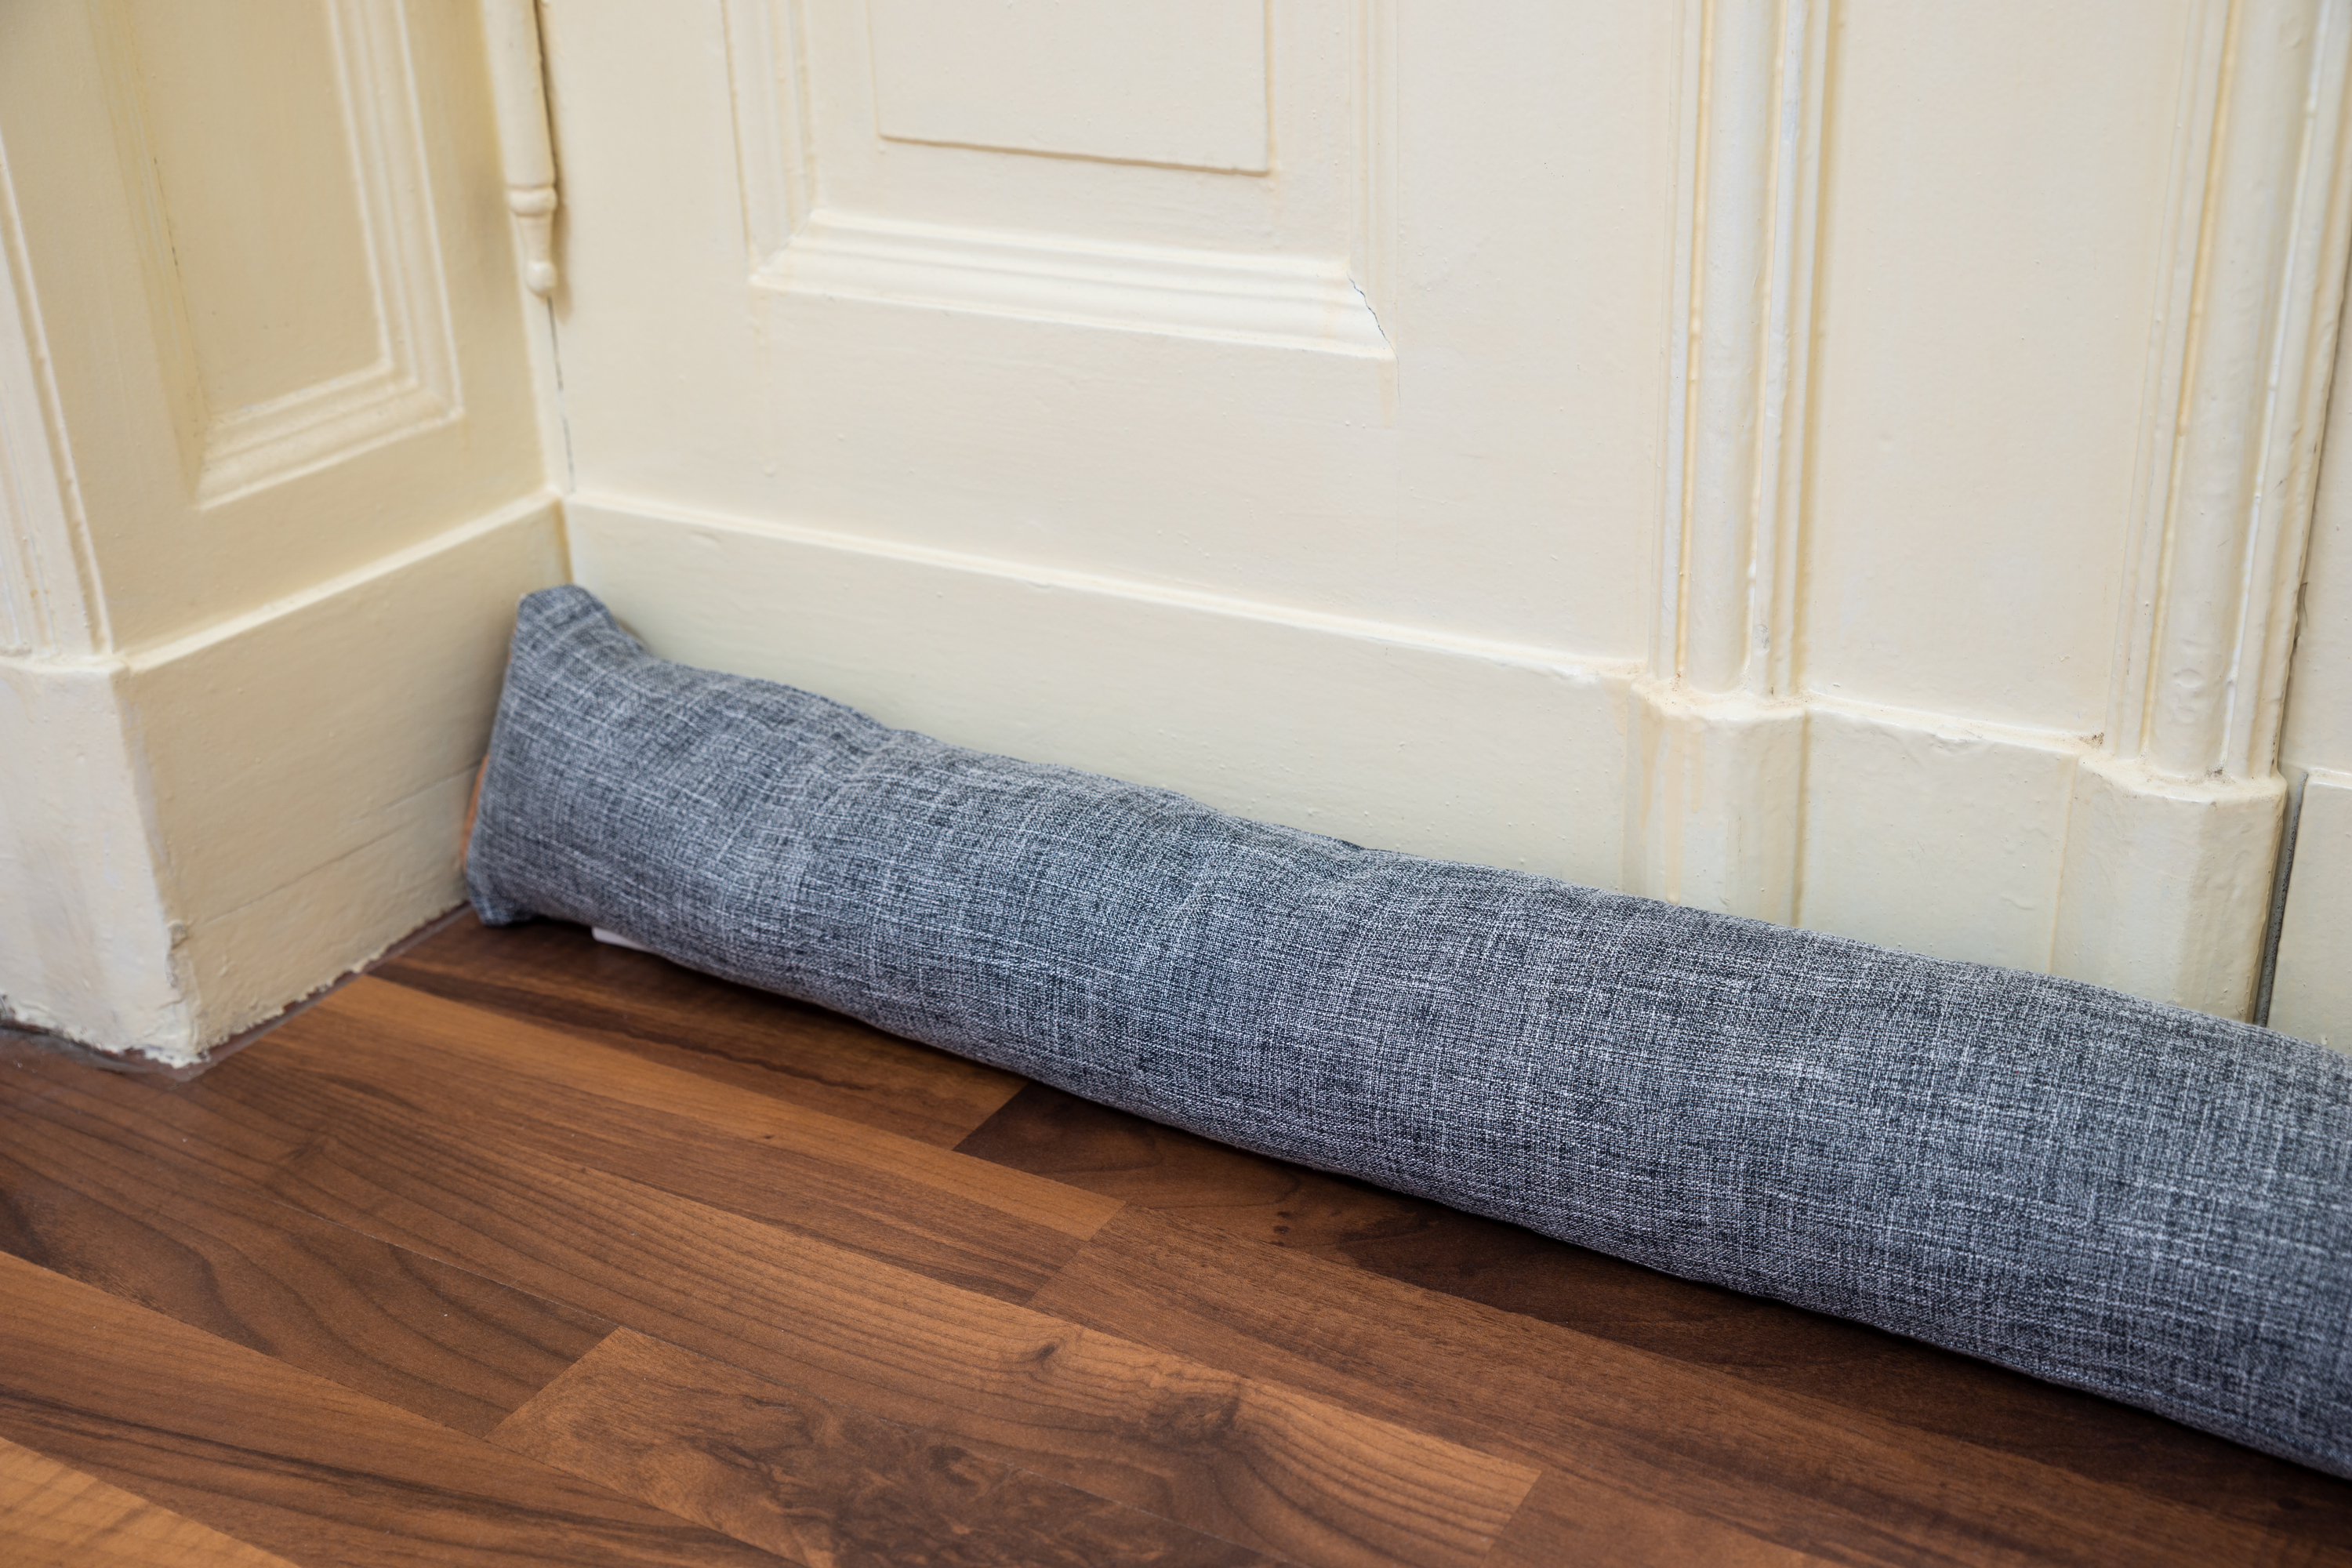 There is nothing worse than letting your home get cold because you have a draft coming from your door. Here are some great ways to prevent door drafts. Draft guards really do make such a difference.